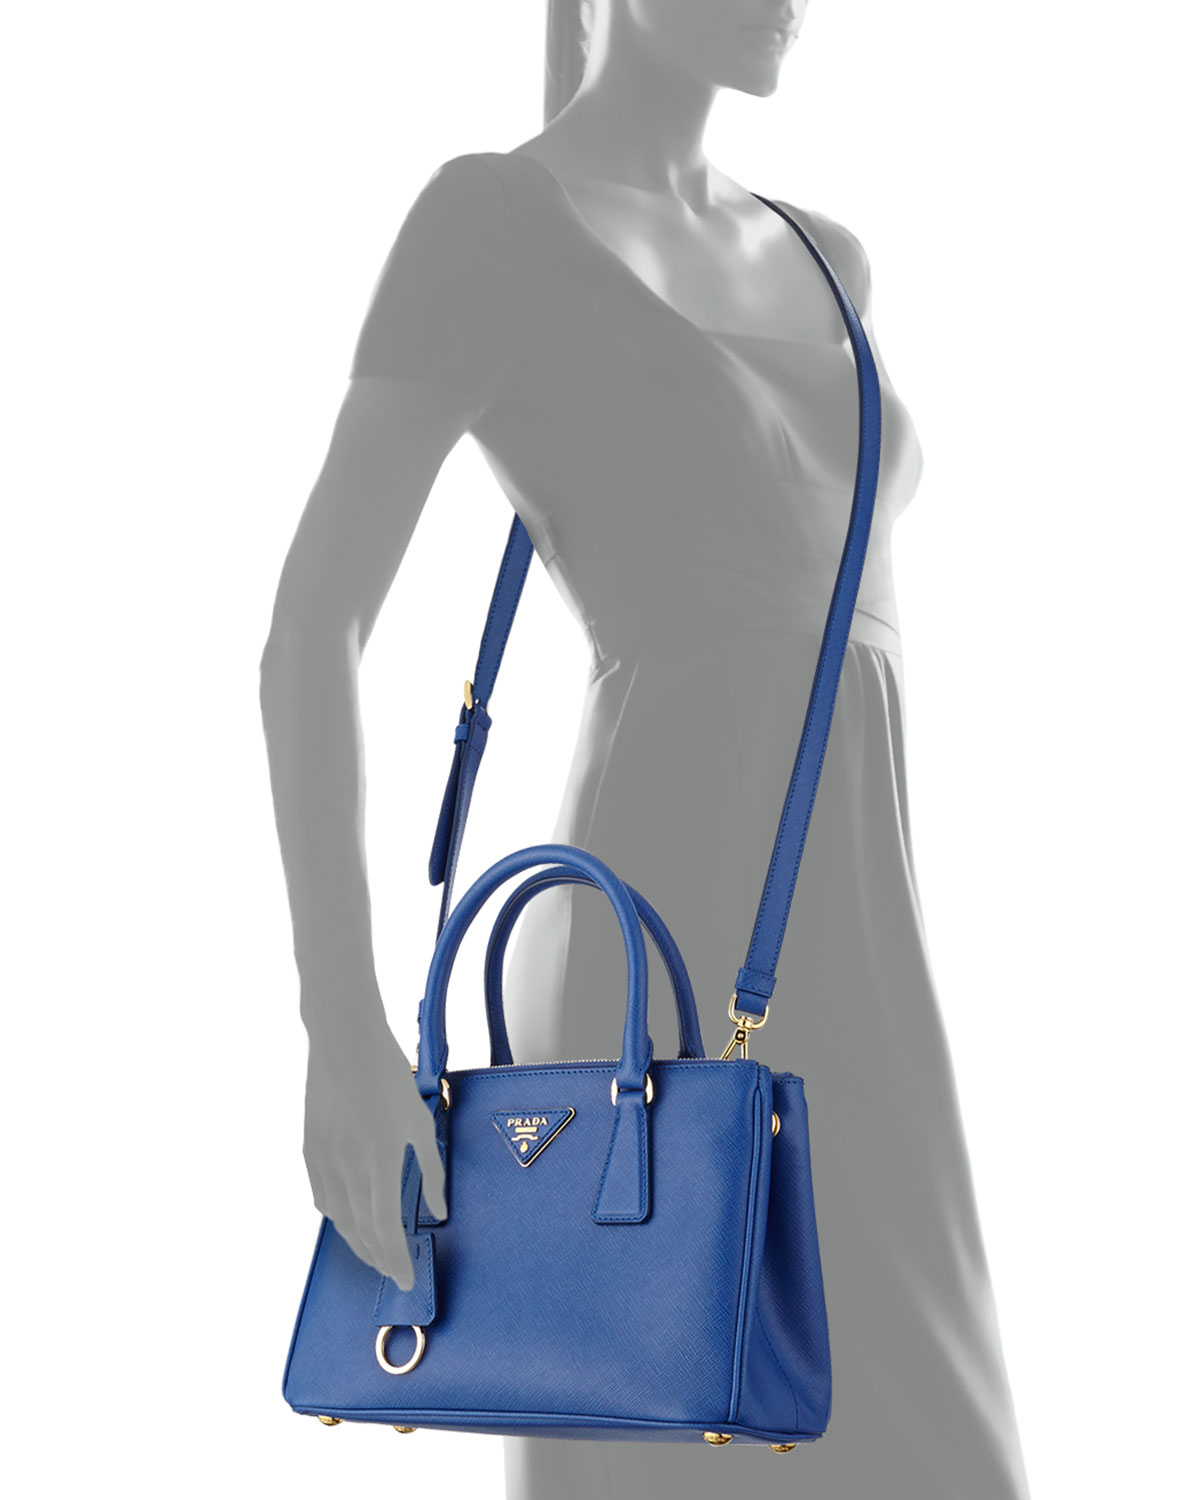 2304422b55a5 ... greece denmark prada saffiano double zip mini crossbody in blue lyst  d5244 c315d a3915 e1823